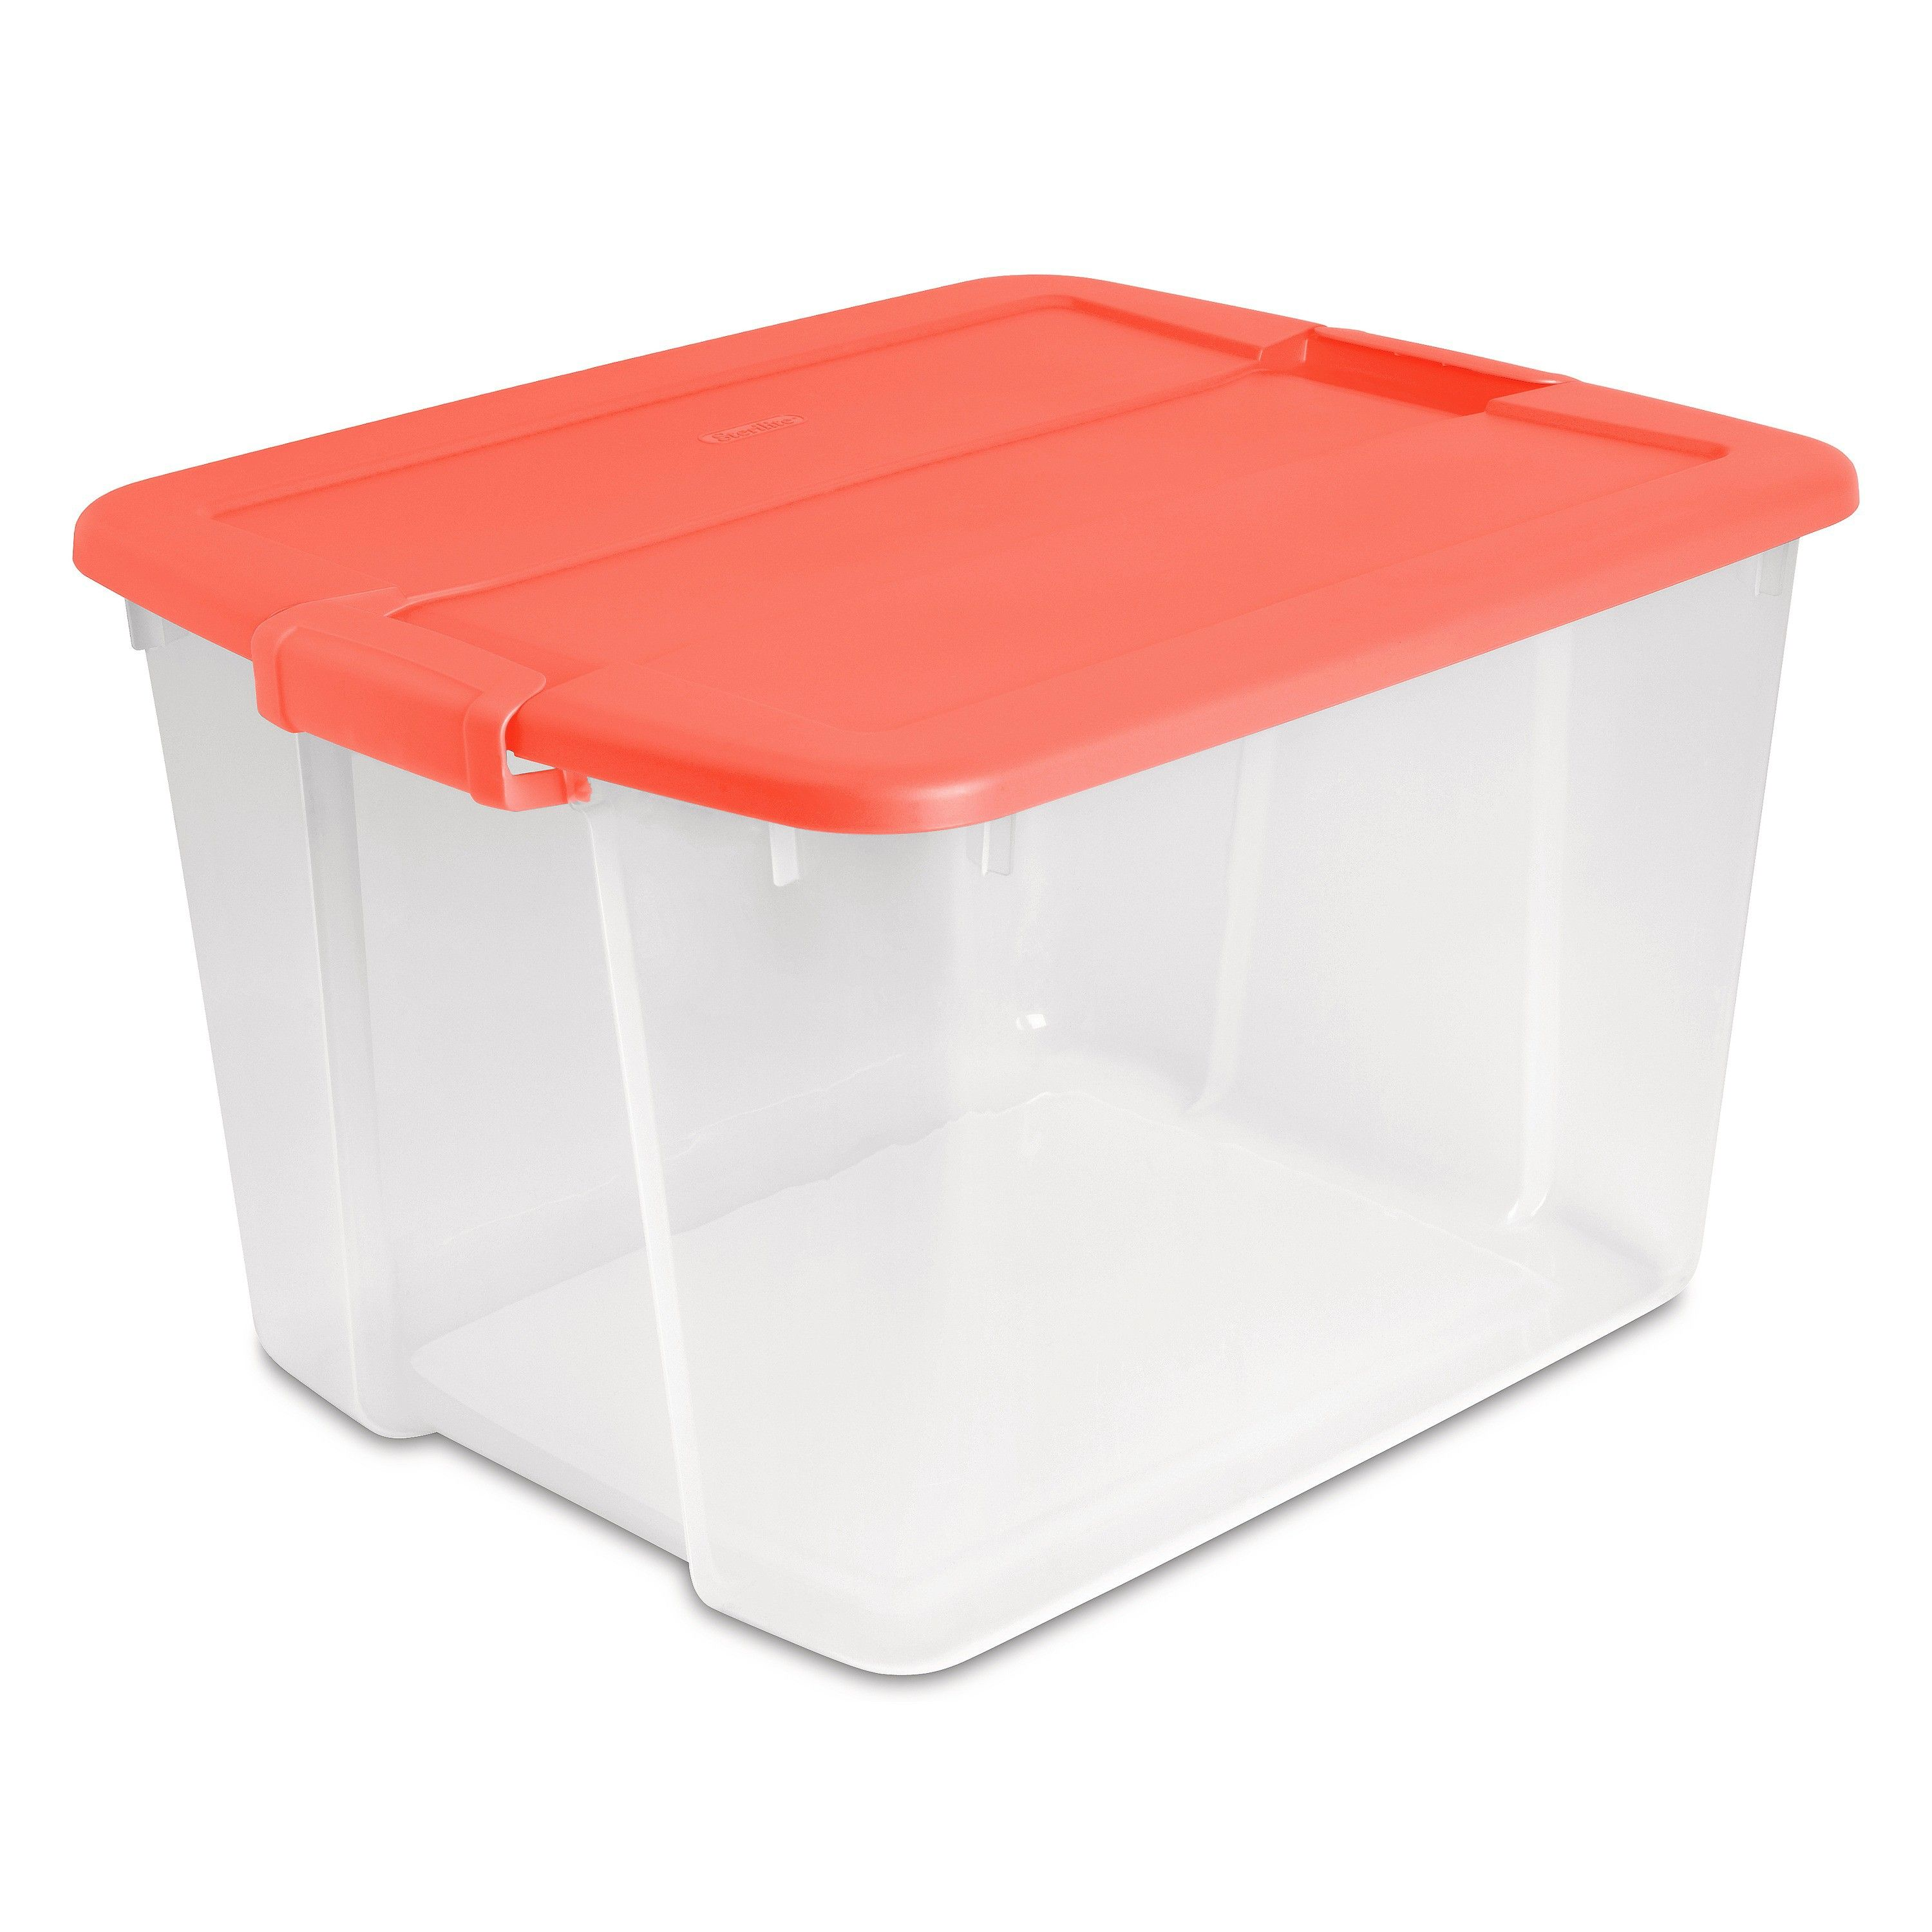 do focus for r storage us tutors primary honey toys can boxes tubs tot organizer tub super lego bins toy sized plastic colored target with